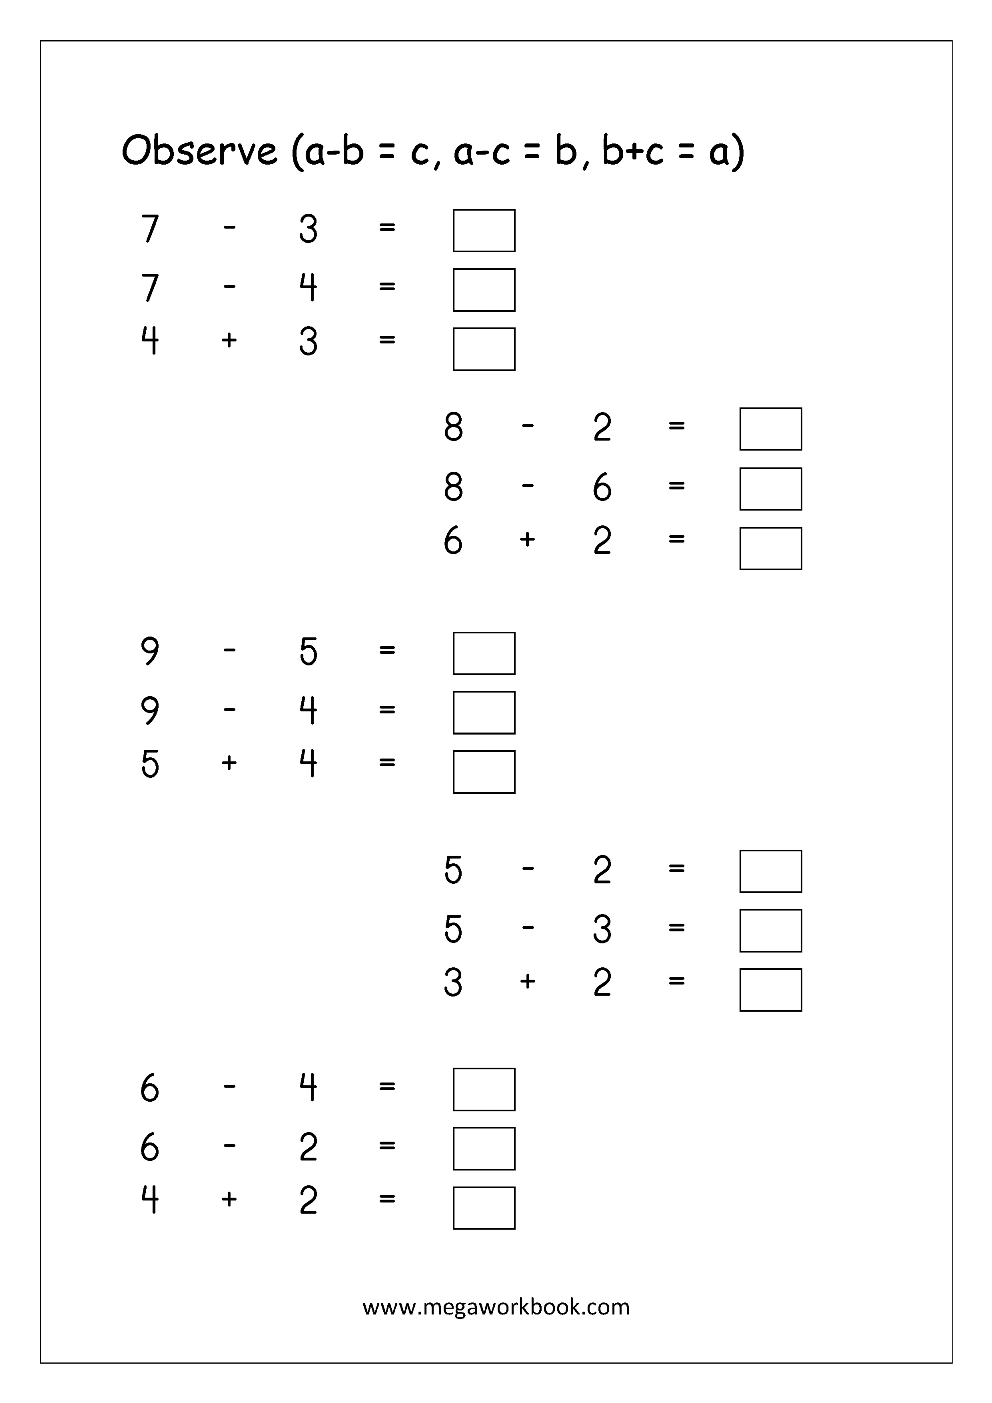 Free Printable Number Subtraction (1-10) Worksheets For